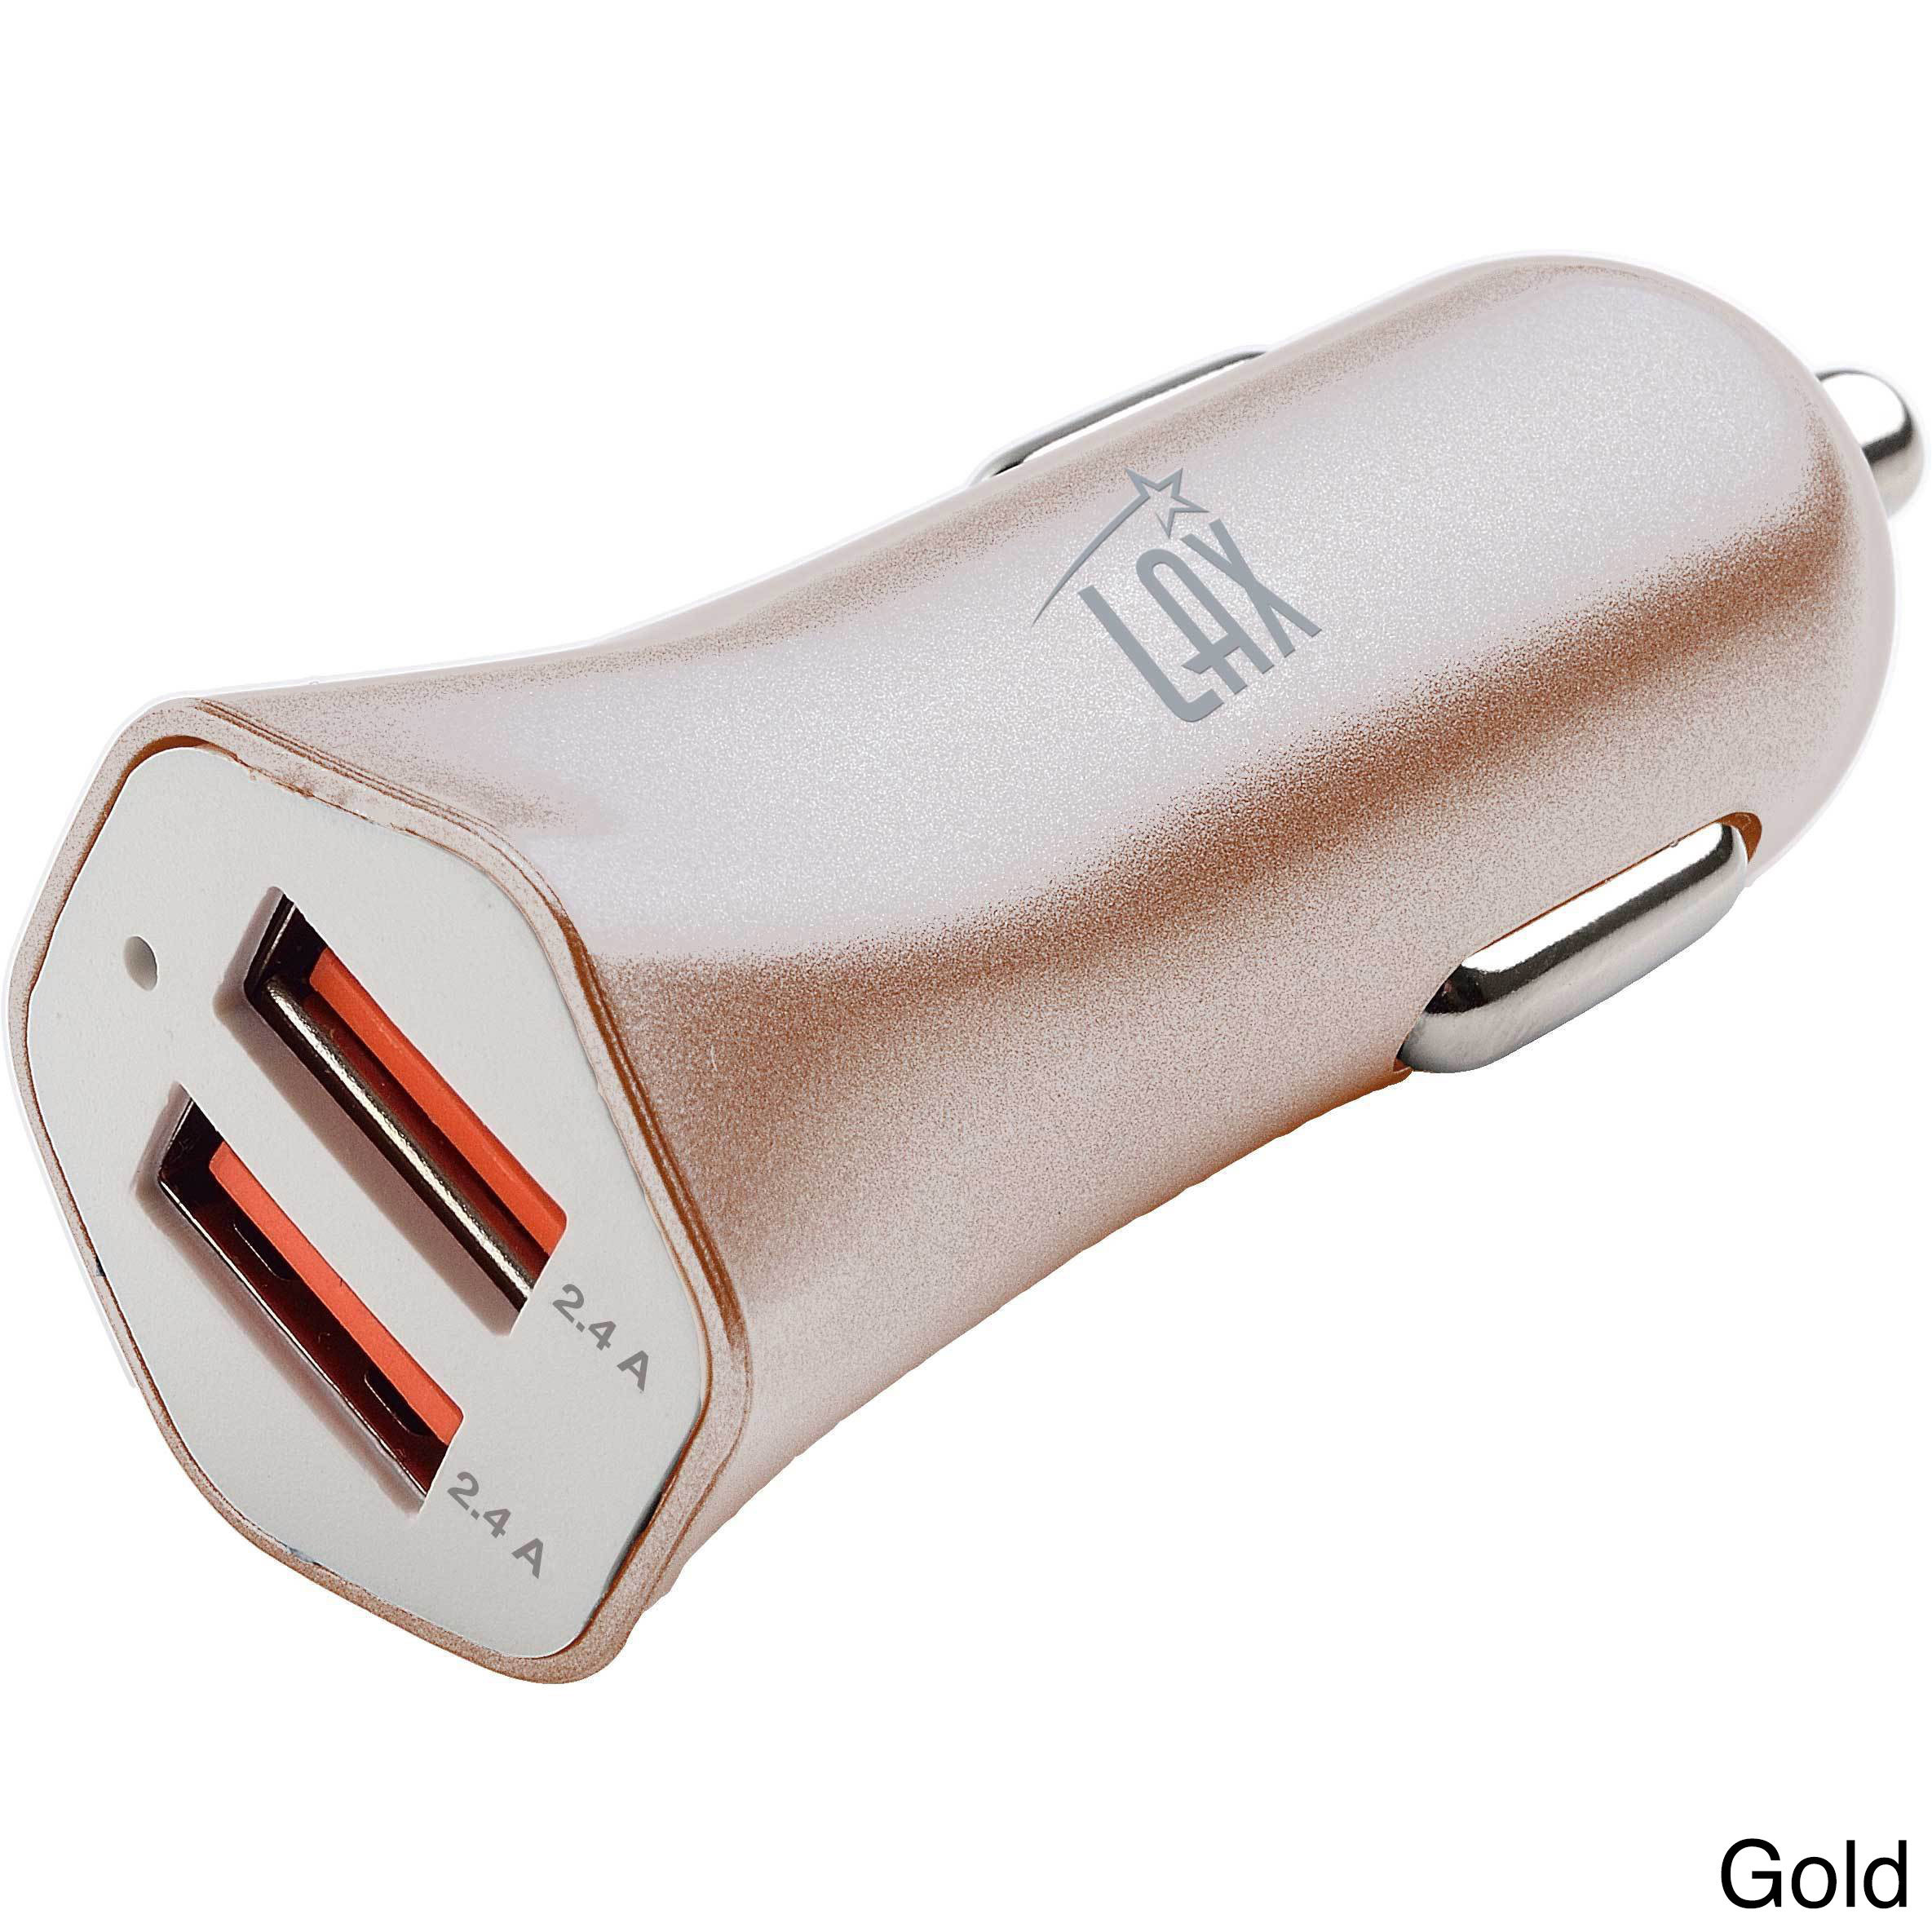 LAX Gadgets Dual USB 4.8A Fast Car Charger for iPhone 6S Plus 6 Plus 6 5 SE 5S 5 5C 4S, Samsung Galaxy S7 S6 Edge Plus Note 5 4 S5 Tab S, LG, HTC, Nexus, iPad Cigarette Lighter Power Adapter